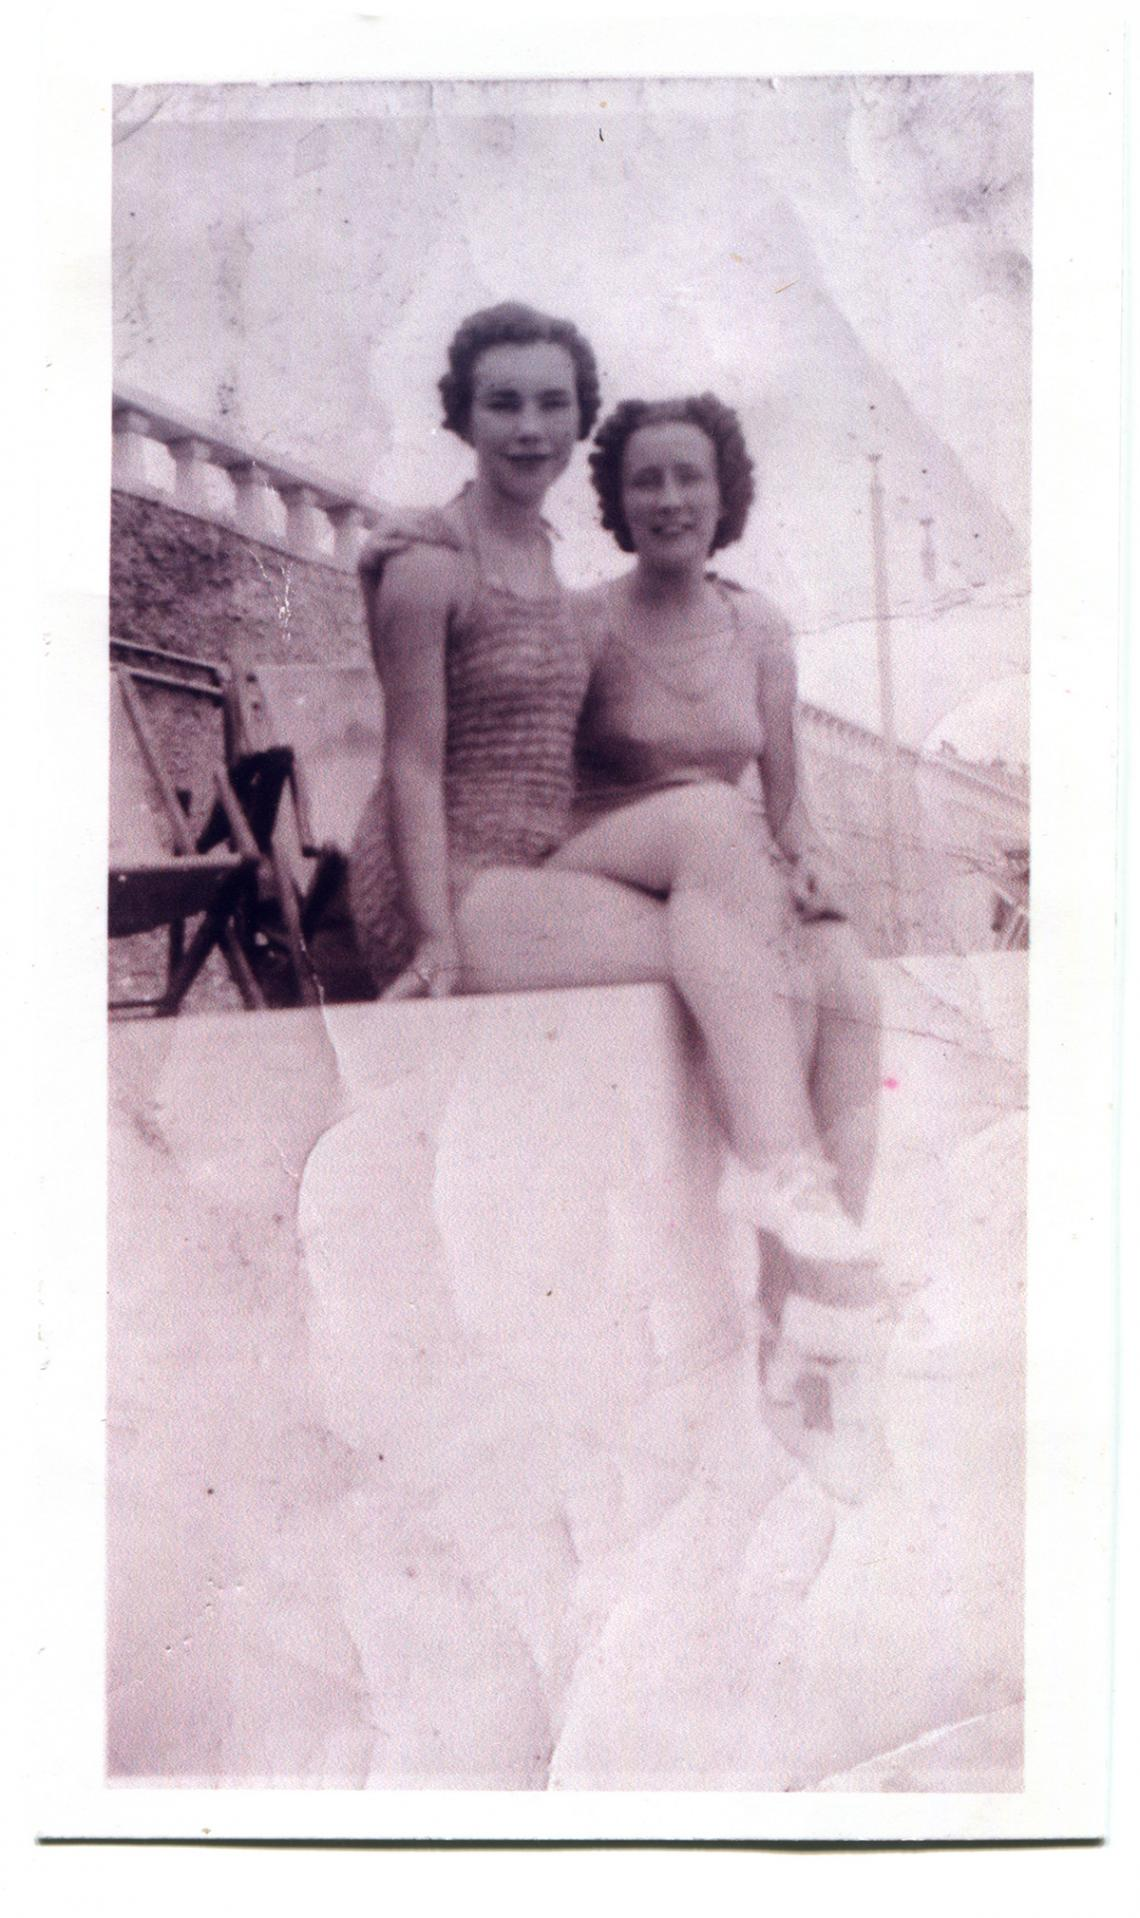 Ursula Pascoe and Myrtle Rowe at the Jubilee Pool